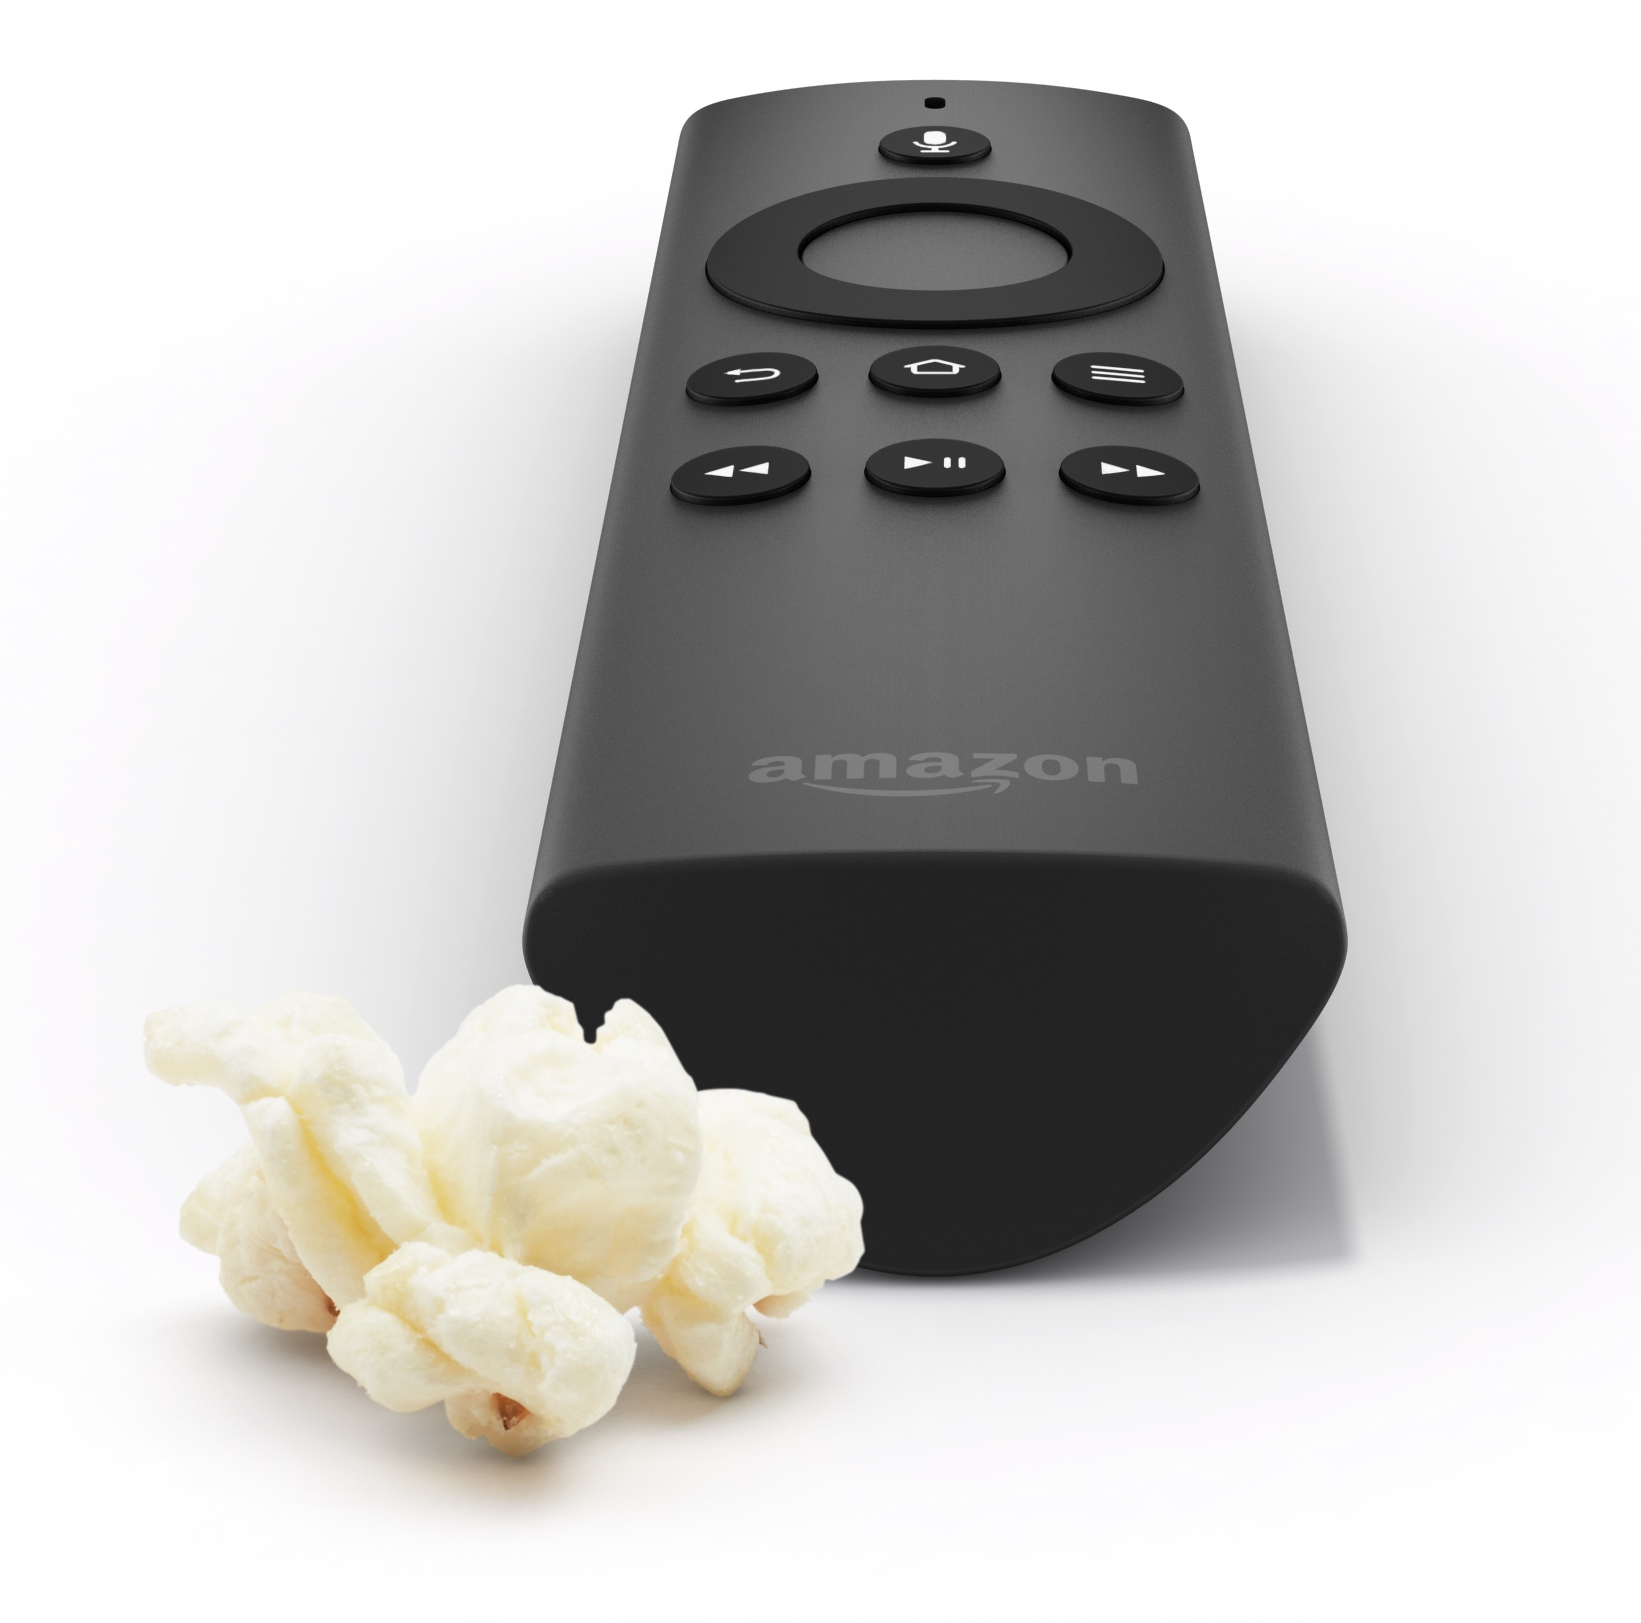 Amazon Fire Remote (popcorn)